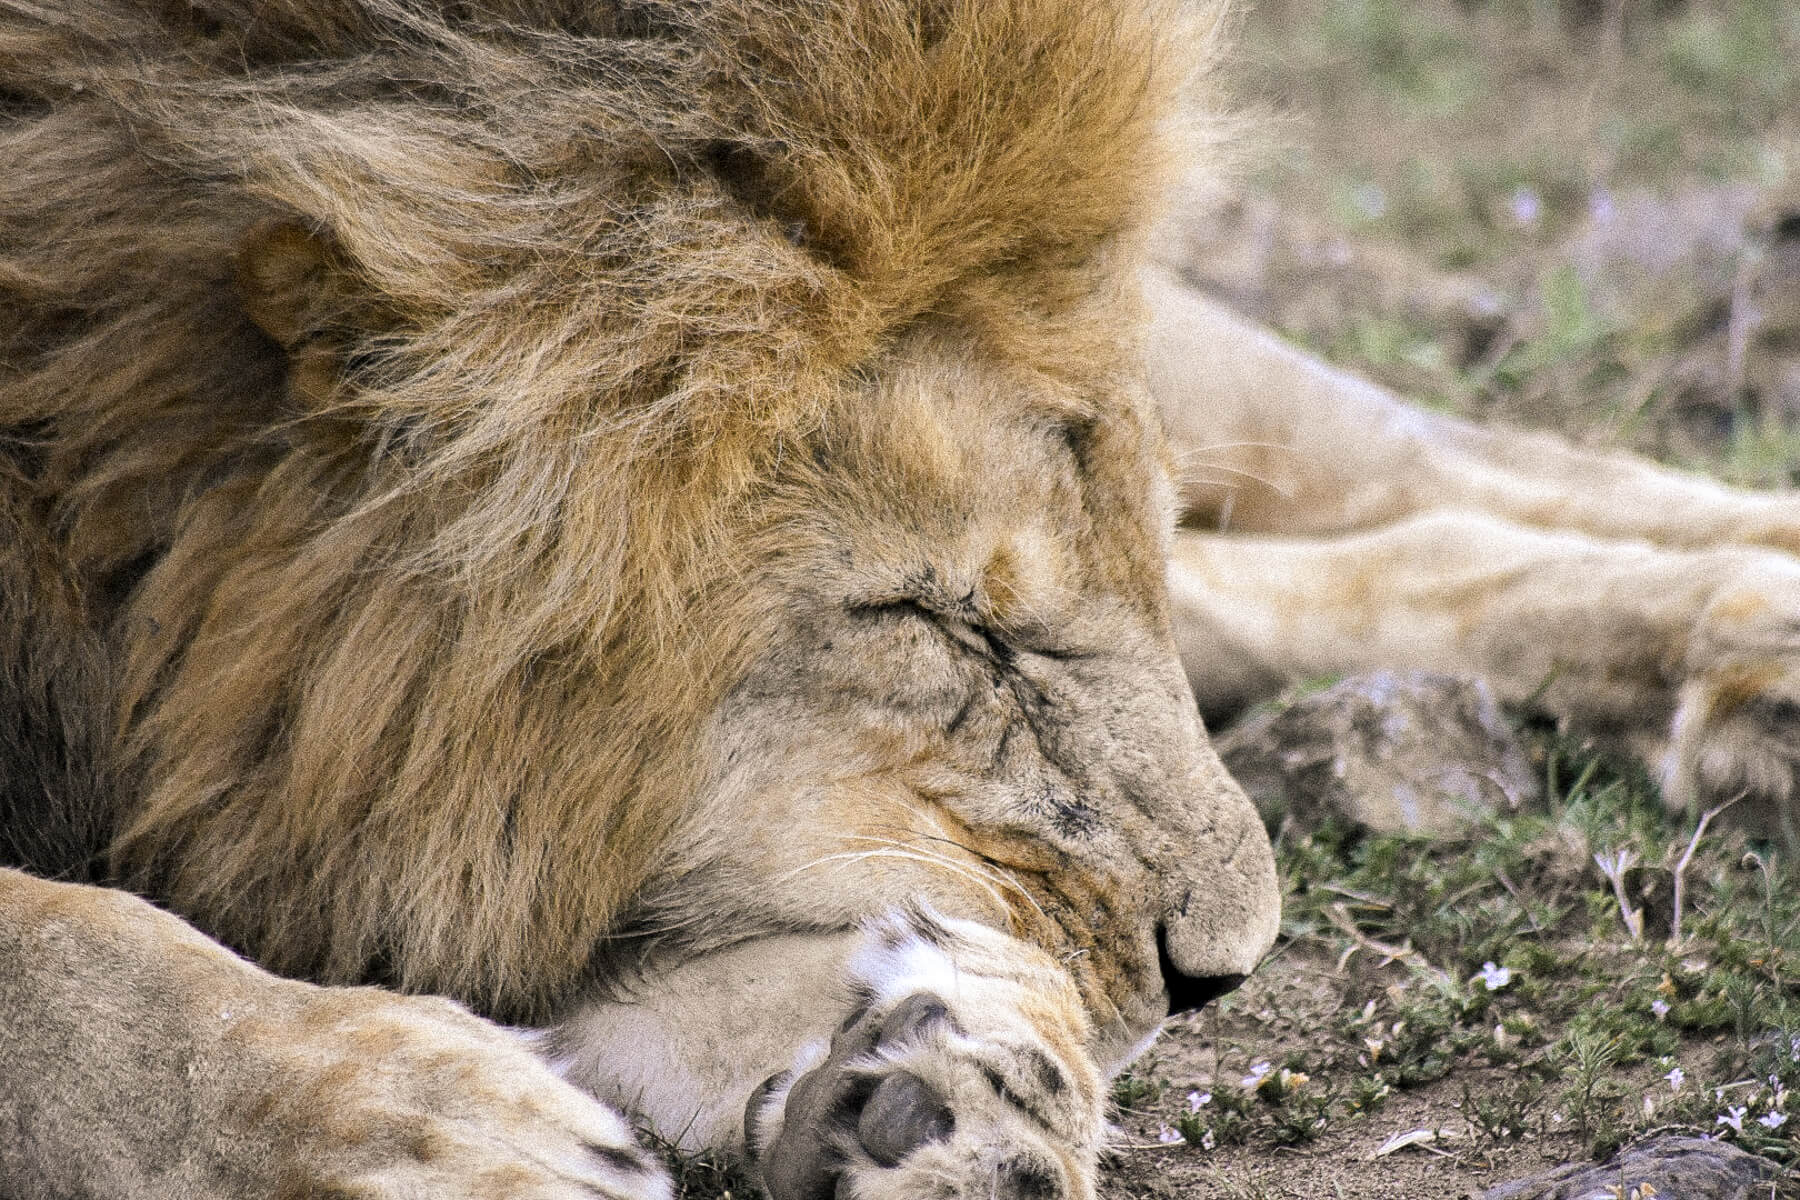 A male lion sleeping with his face squashed up against his leg